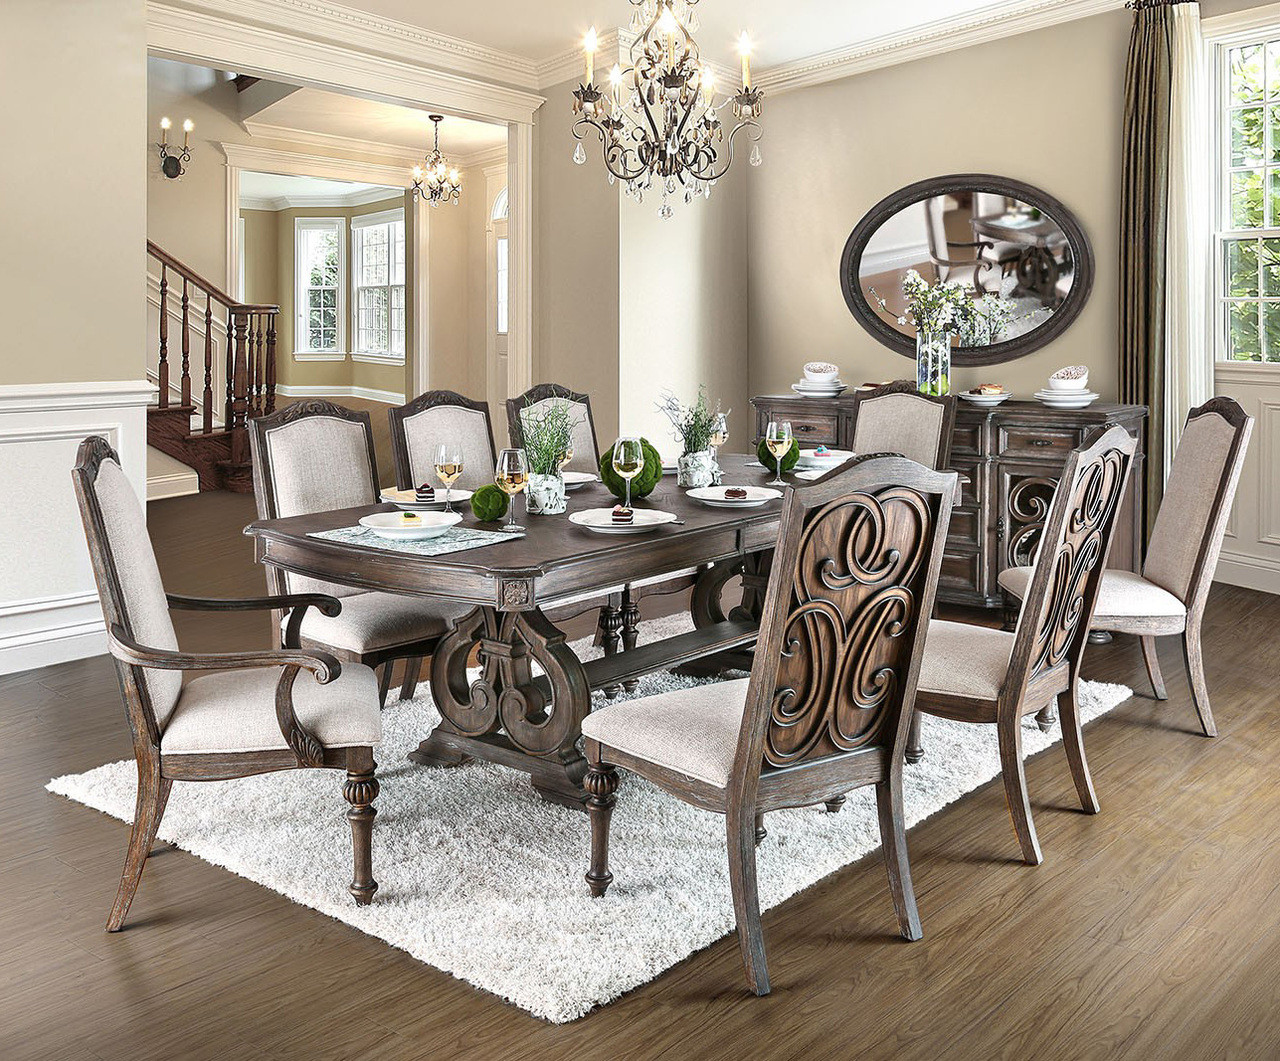 Perfect Furniture Of America CM3150T Rustic Natural Dining Set | ARCADIA 7PC Dining  Table With Extension ...